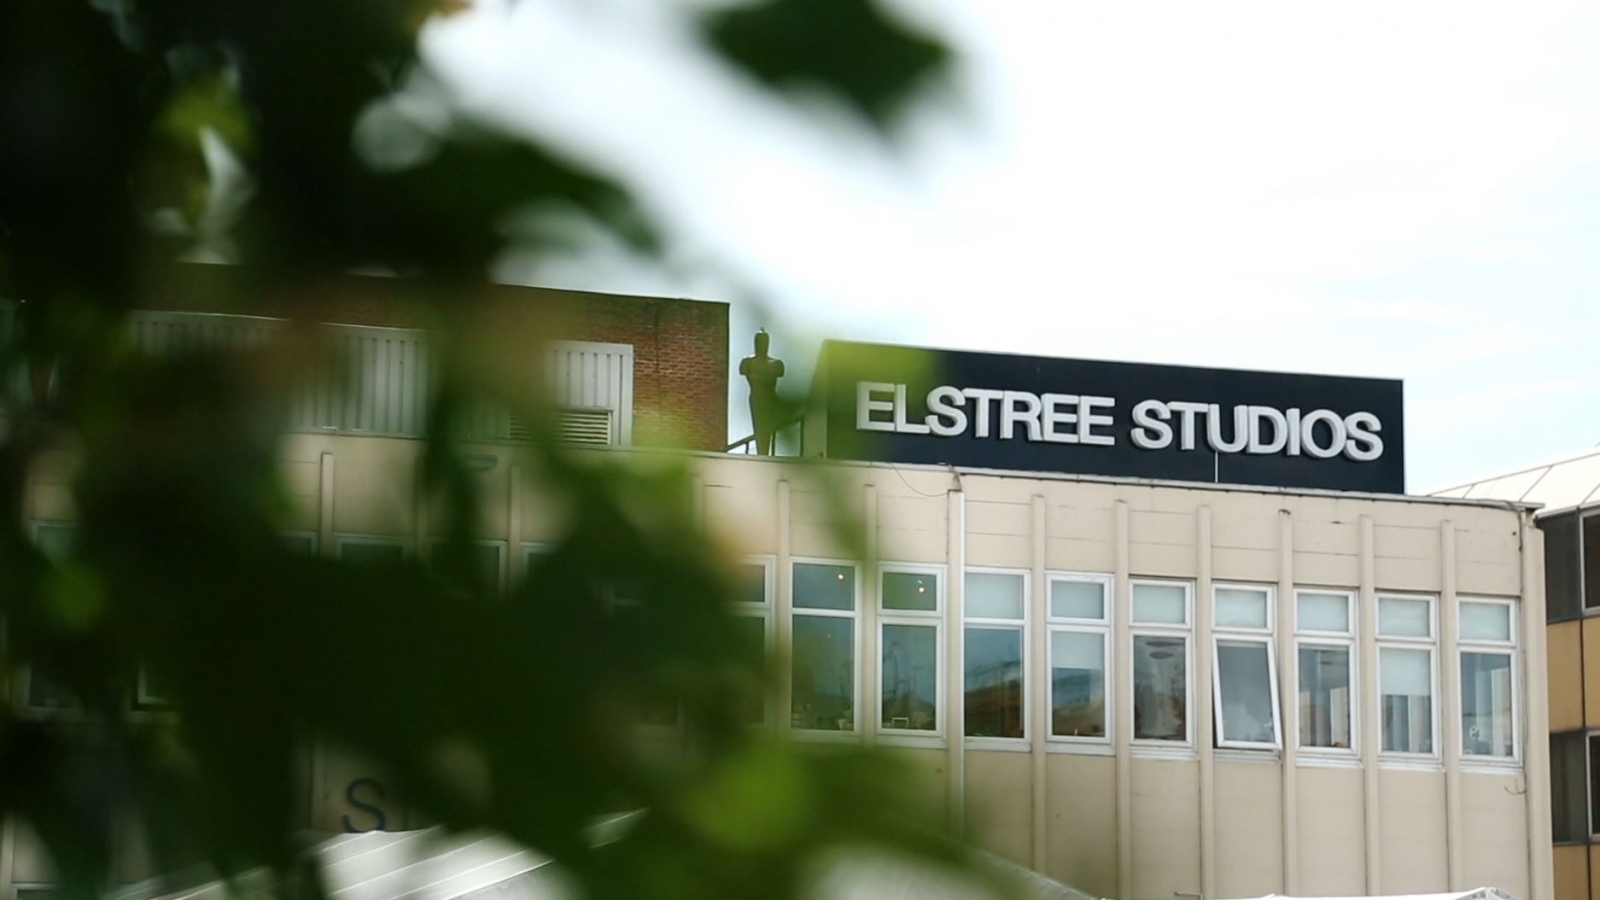 From Star Wars to Sherlock Holmes - Elstree Studios Set for Expansion